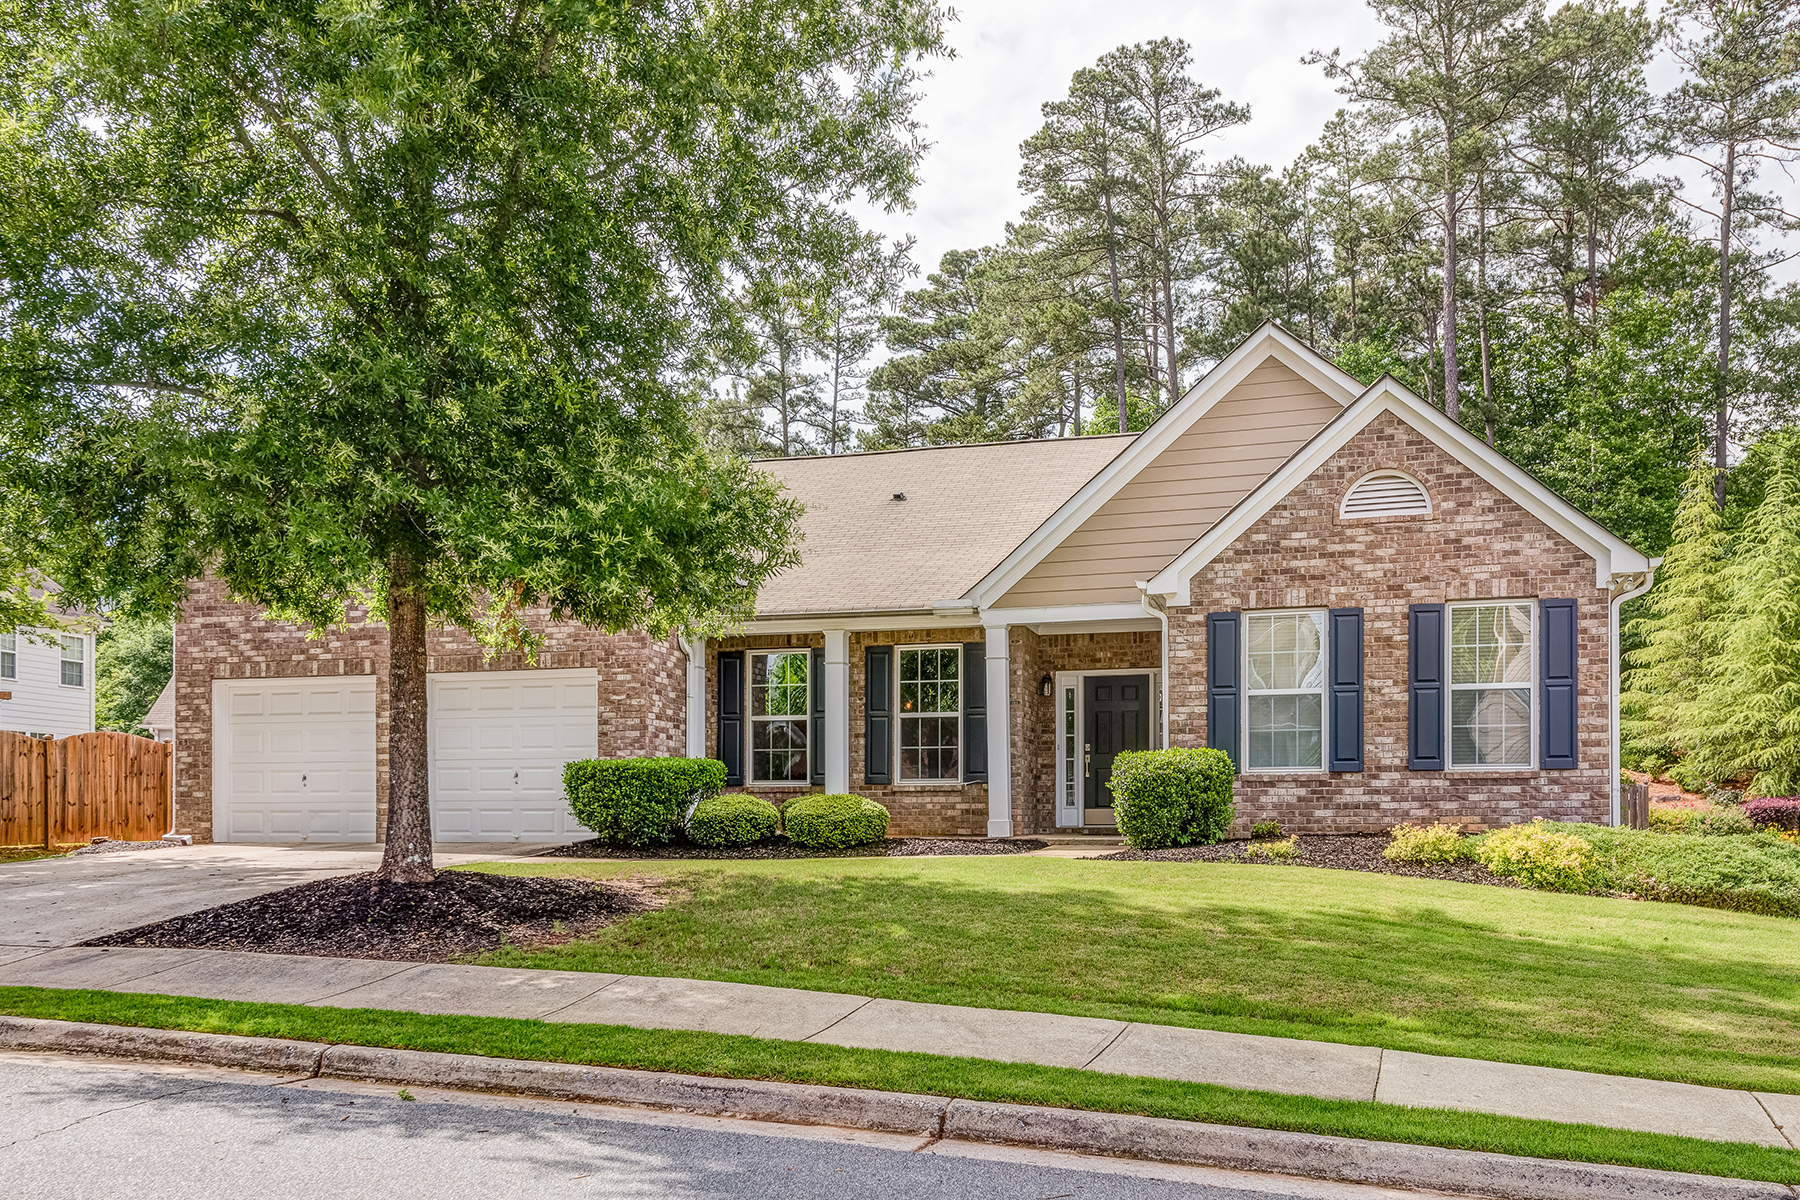 Single Family Home for Sale at Modern Renovated Ranch 3424 Owens Landing Dr Kennesaw, Georgia 30152 United States